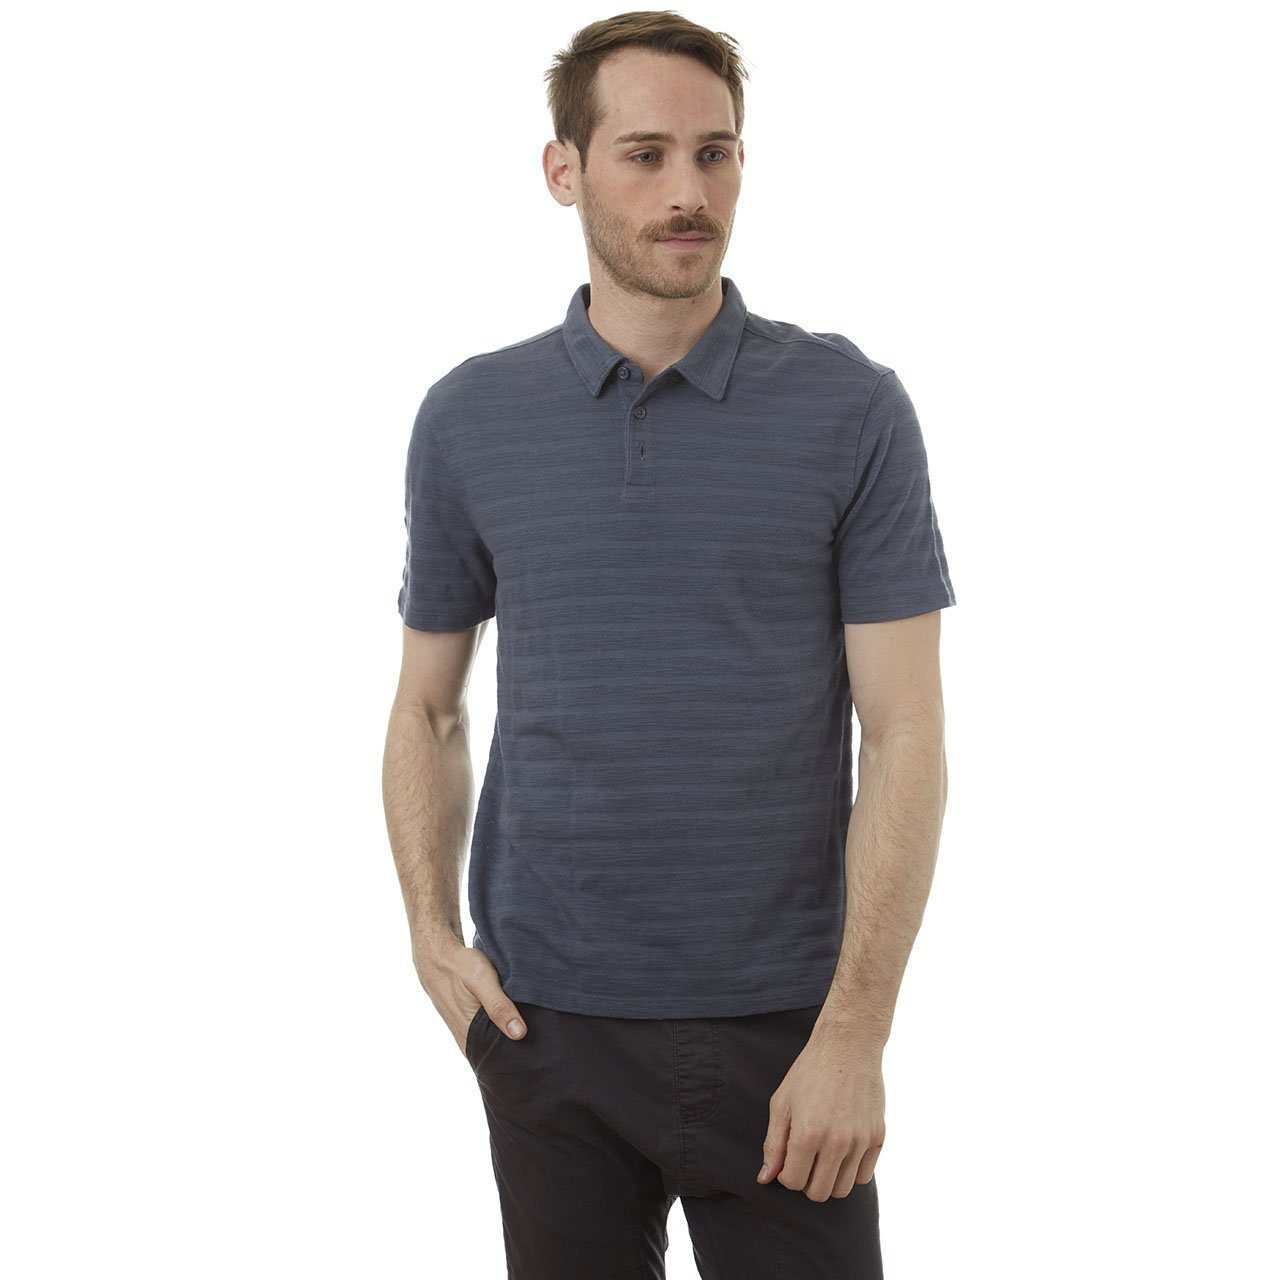 mens blue polo shirt mens clothing clothes lord owens